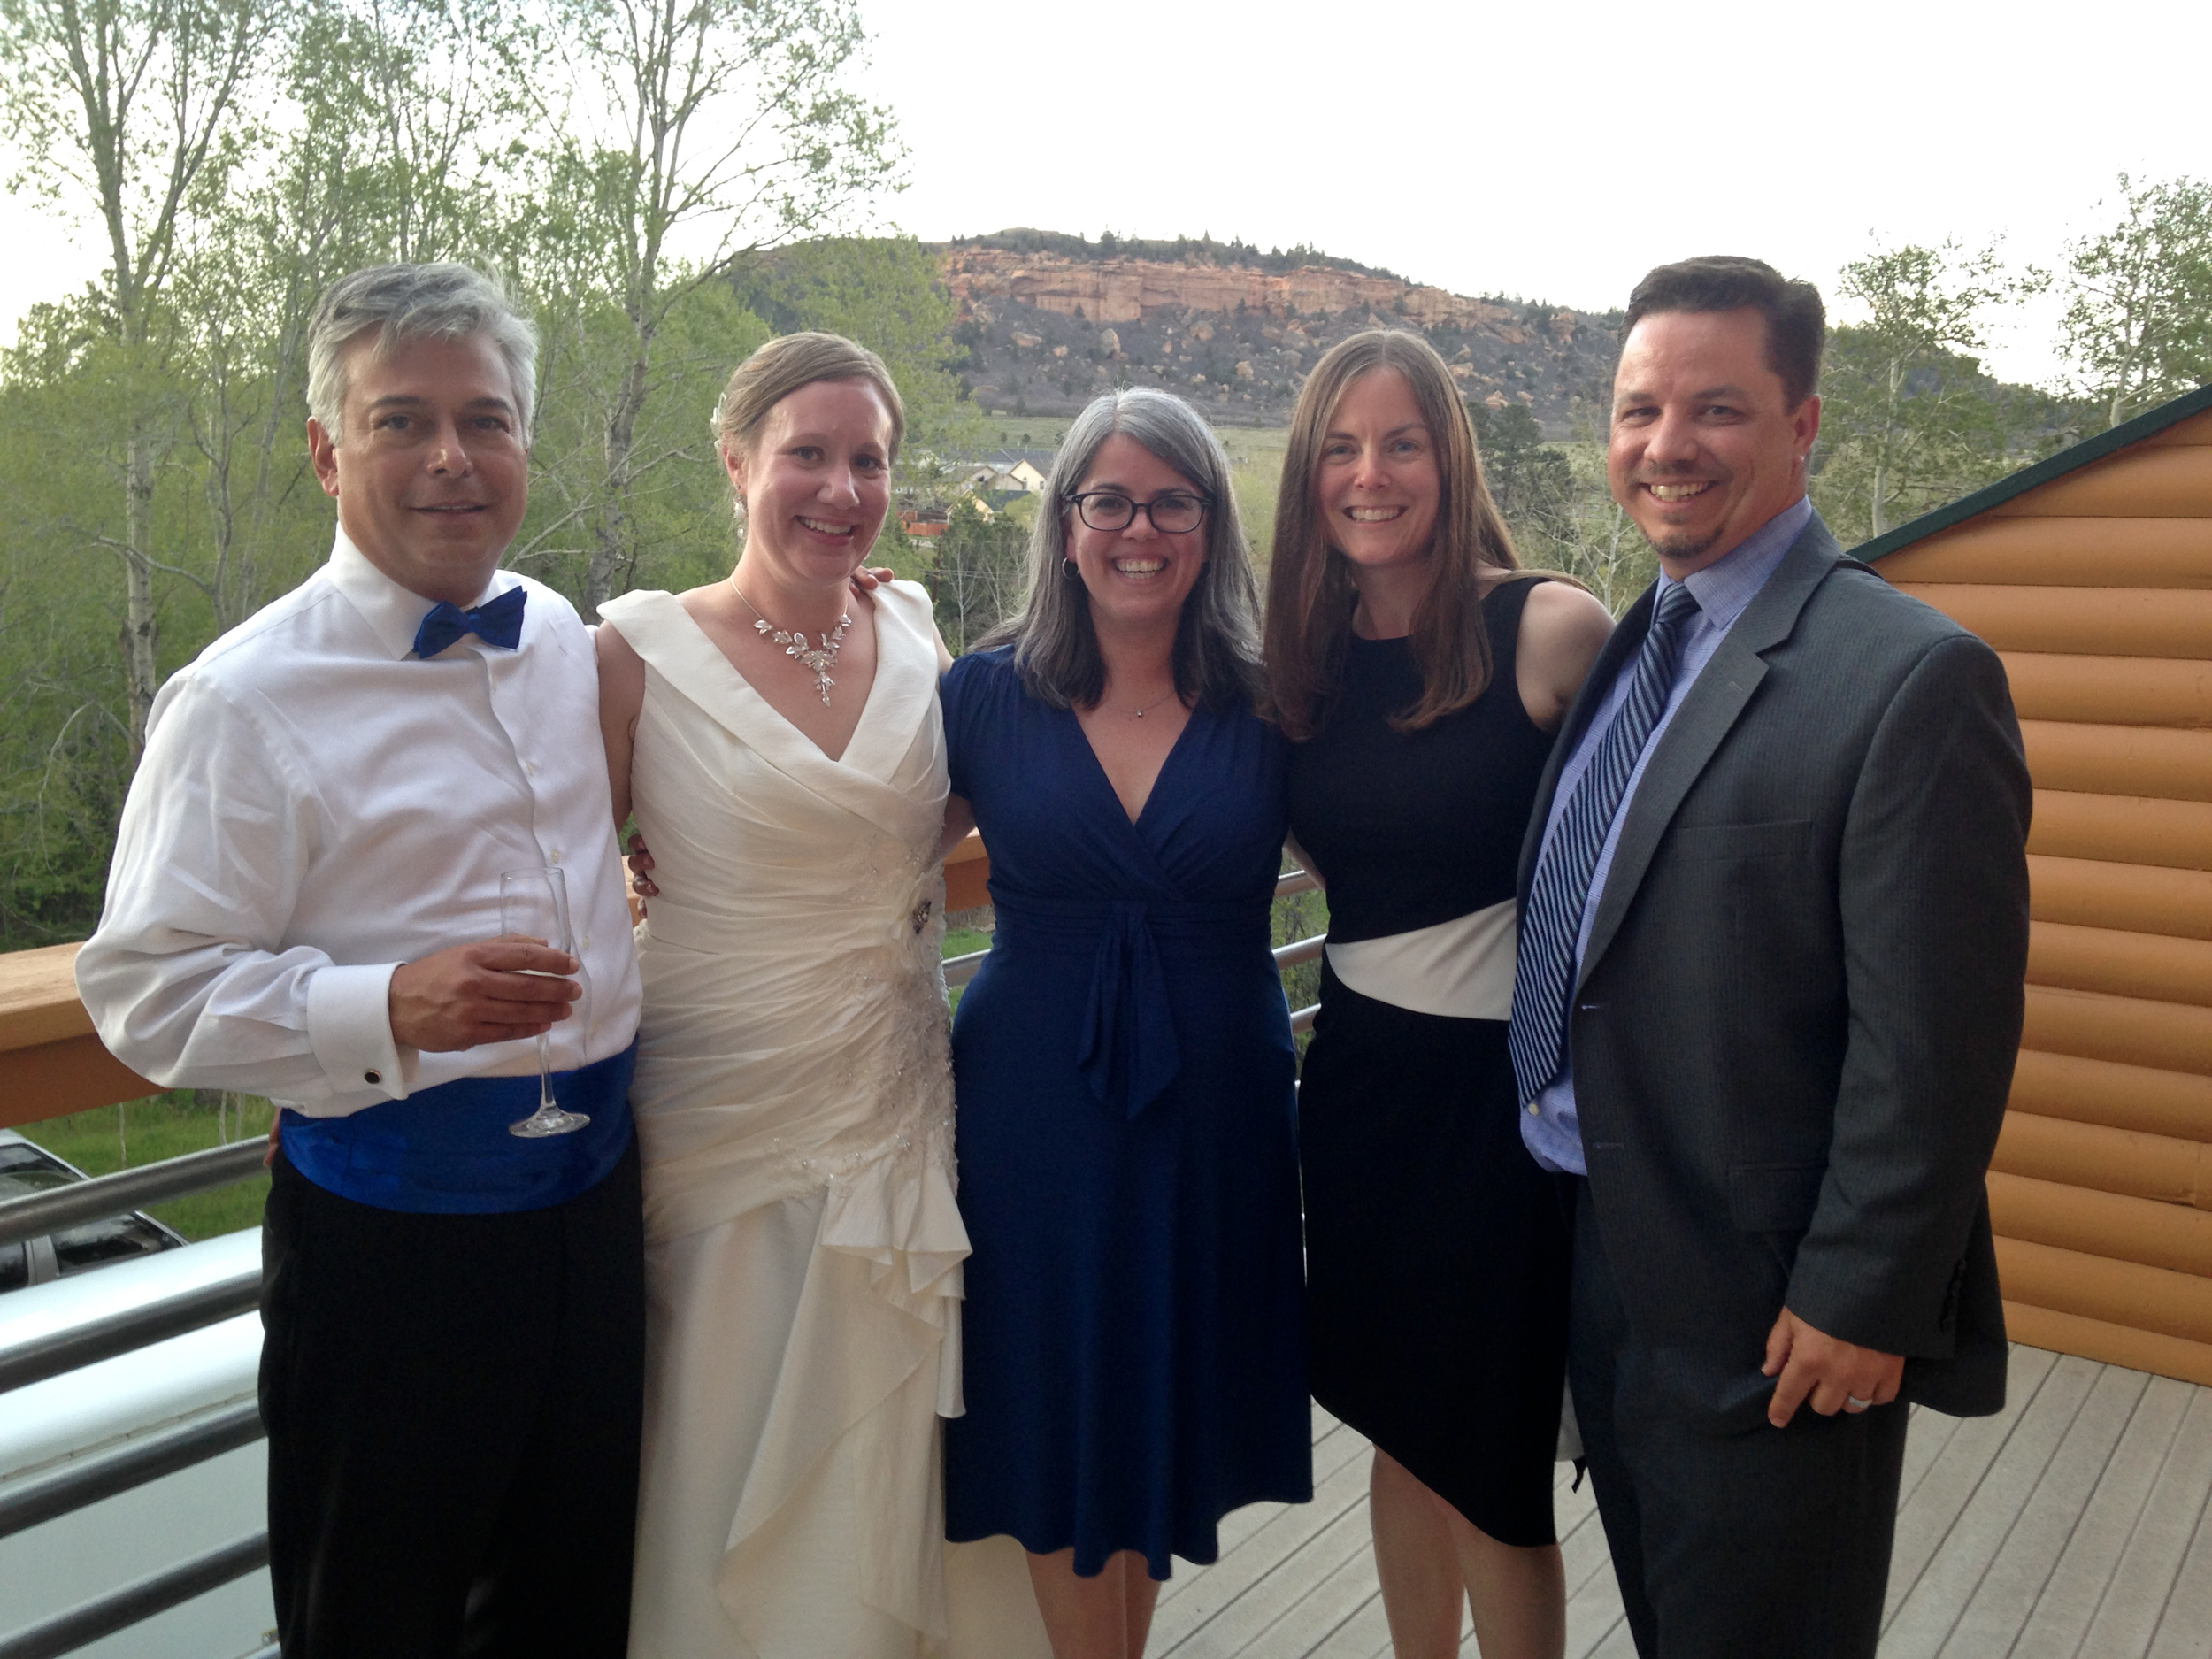 From left: Paul, Sharon, me, Katie and Jason - friends forever!